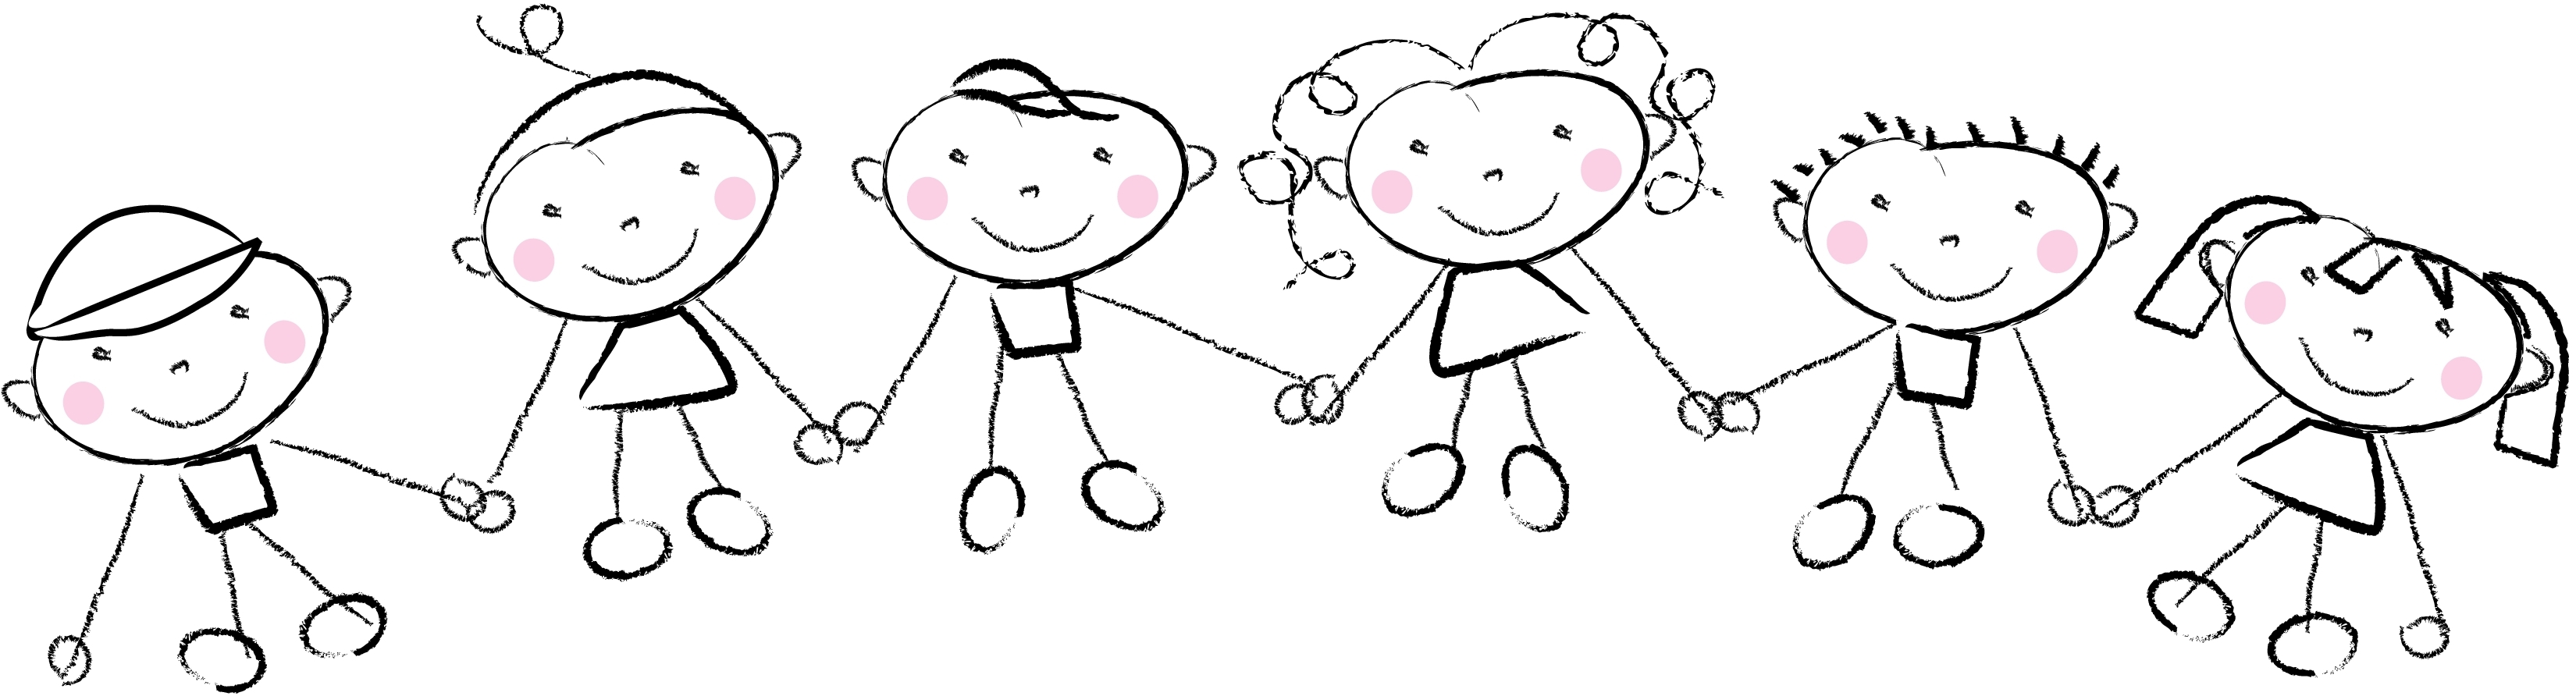 Children Holding Hands Clipart Black And White.